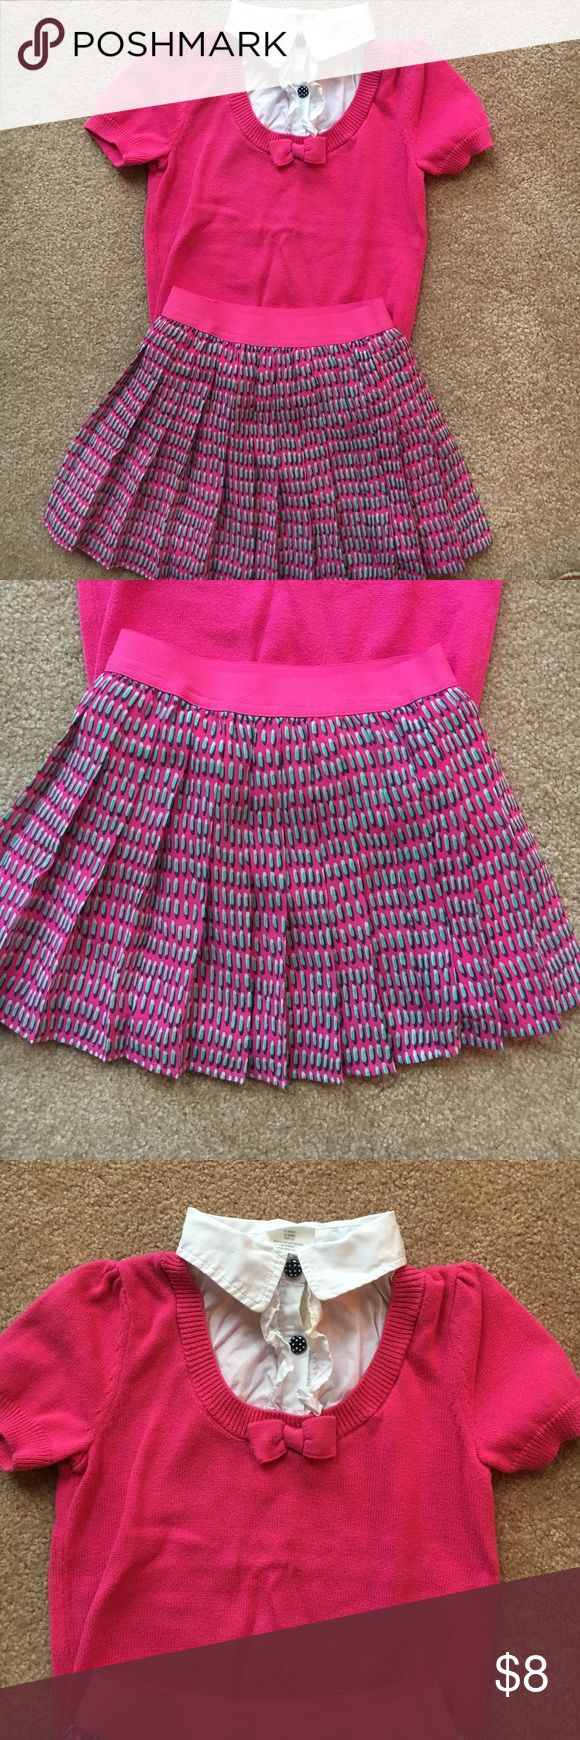 Preppy school girl outfit Girls size 5/6T preppy school girl outfit. Pleated skirt and collared shirt, so adorable and great condition Matching Sets